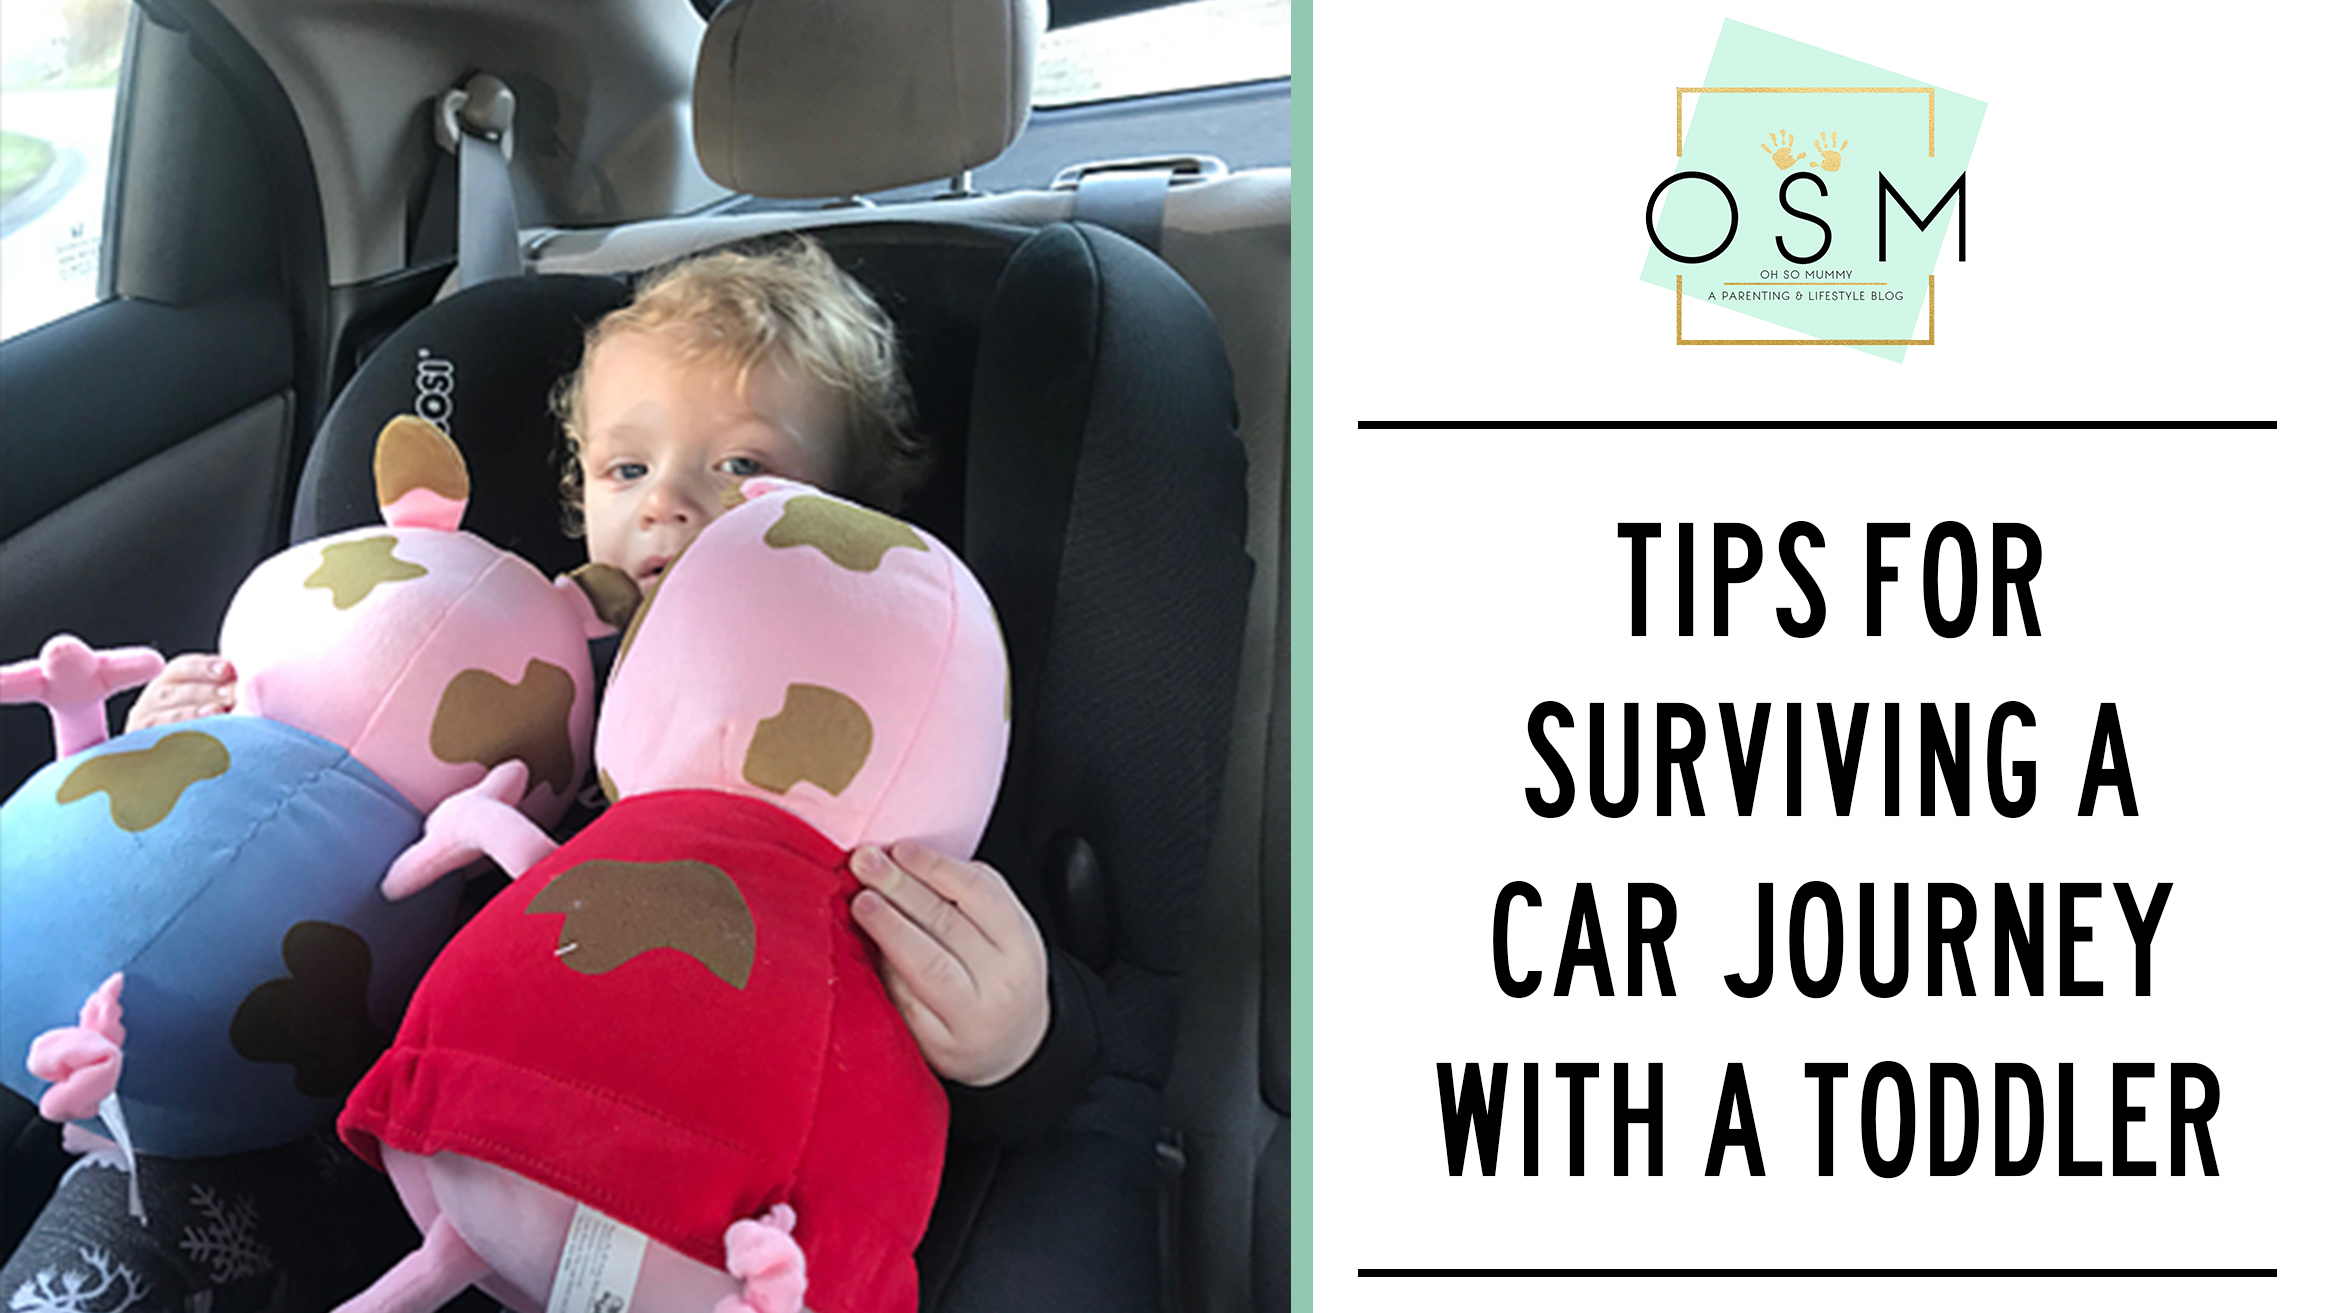 Tips for surviving car journeys with toddlers – Oh So Mummy